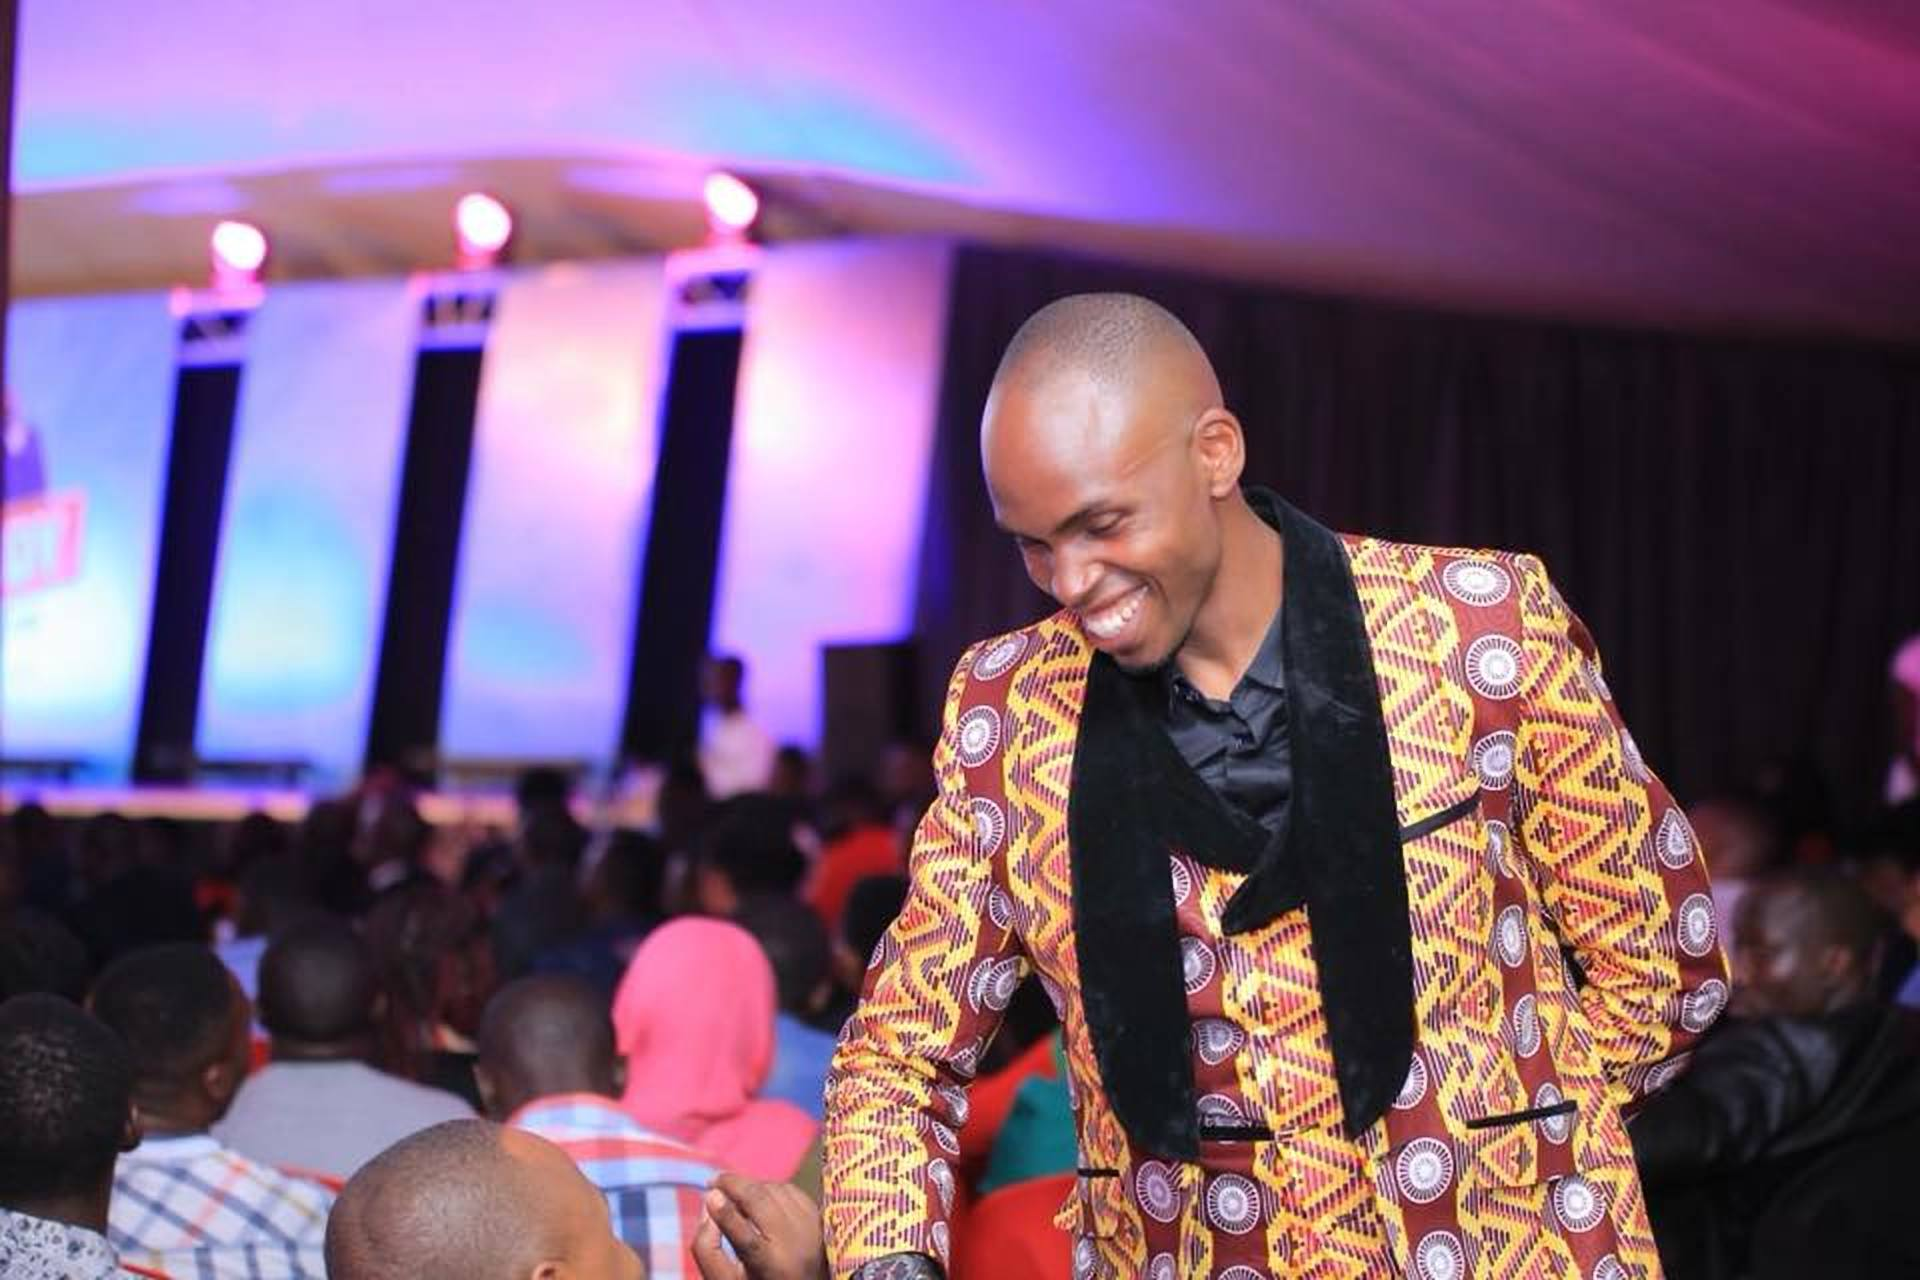 Award winning stand-up comedian and Brainchild of the Comedy store series, Alex Muhangi (COURTESY PHOTO)